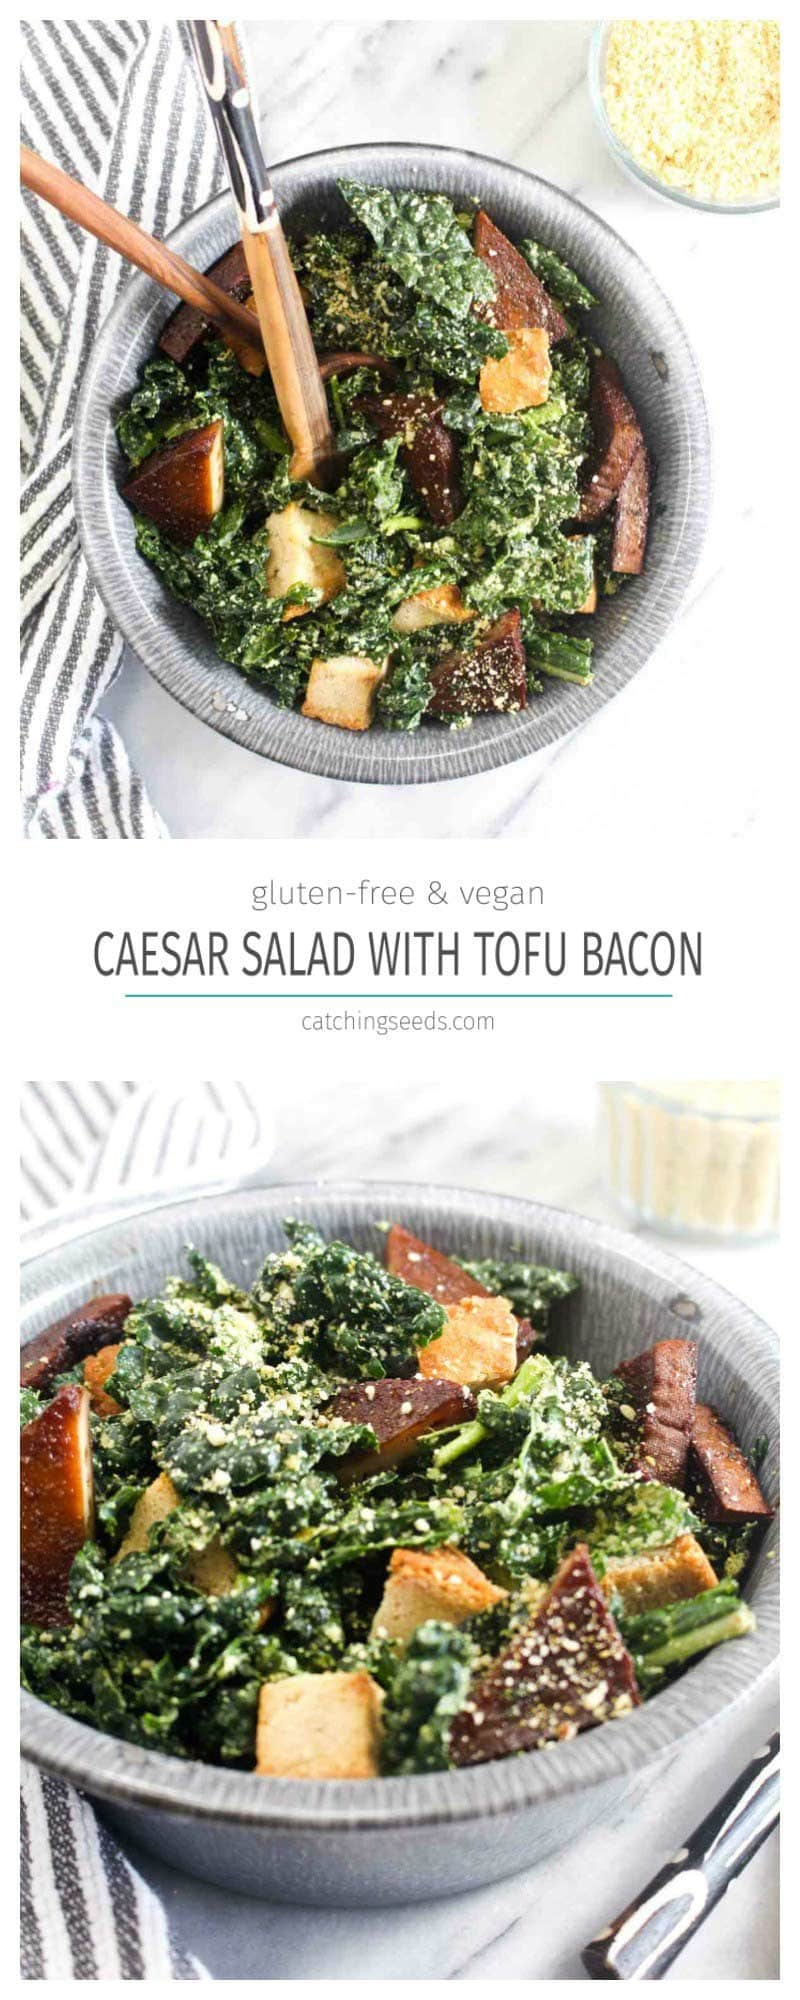 A collage of Kale Caesar Salad in a bowl with salad tongs garnished with vegan parmesan cheese, croutons, and baked tofu with a striped towel.